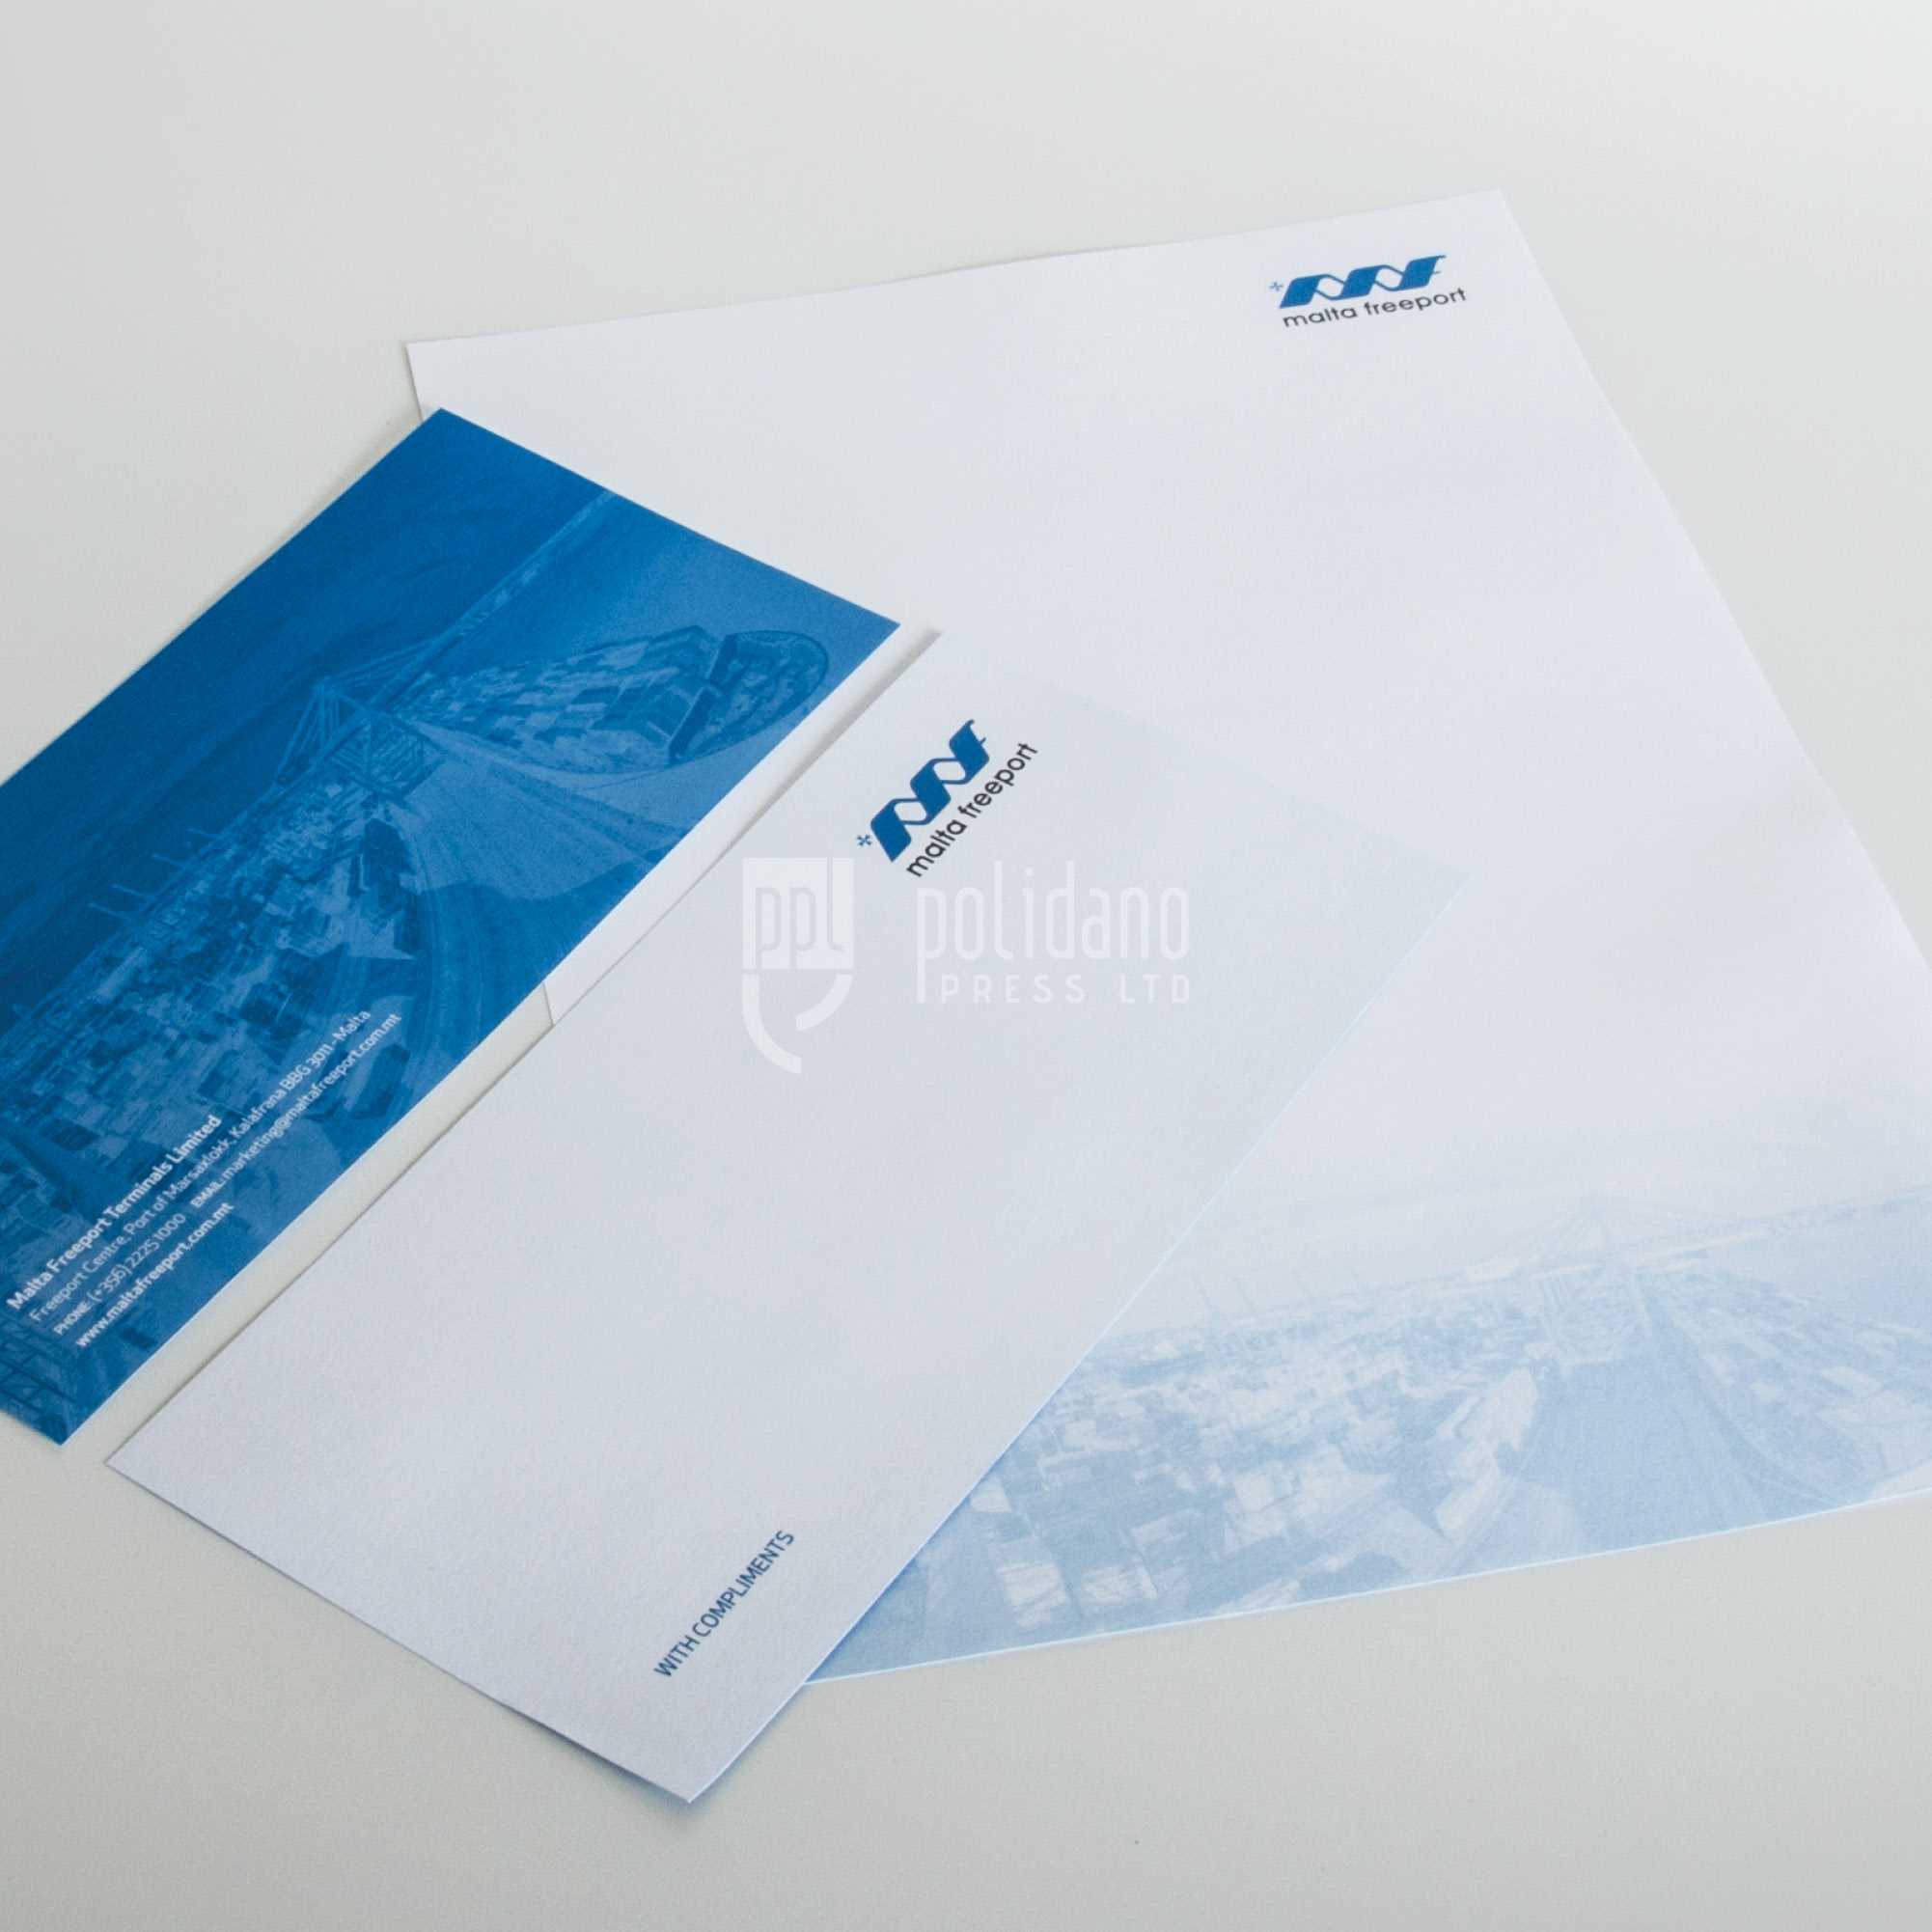 Malta Freeport stationery